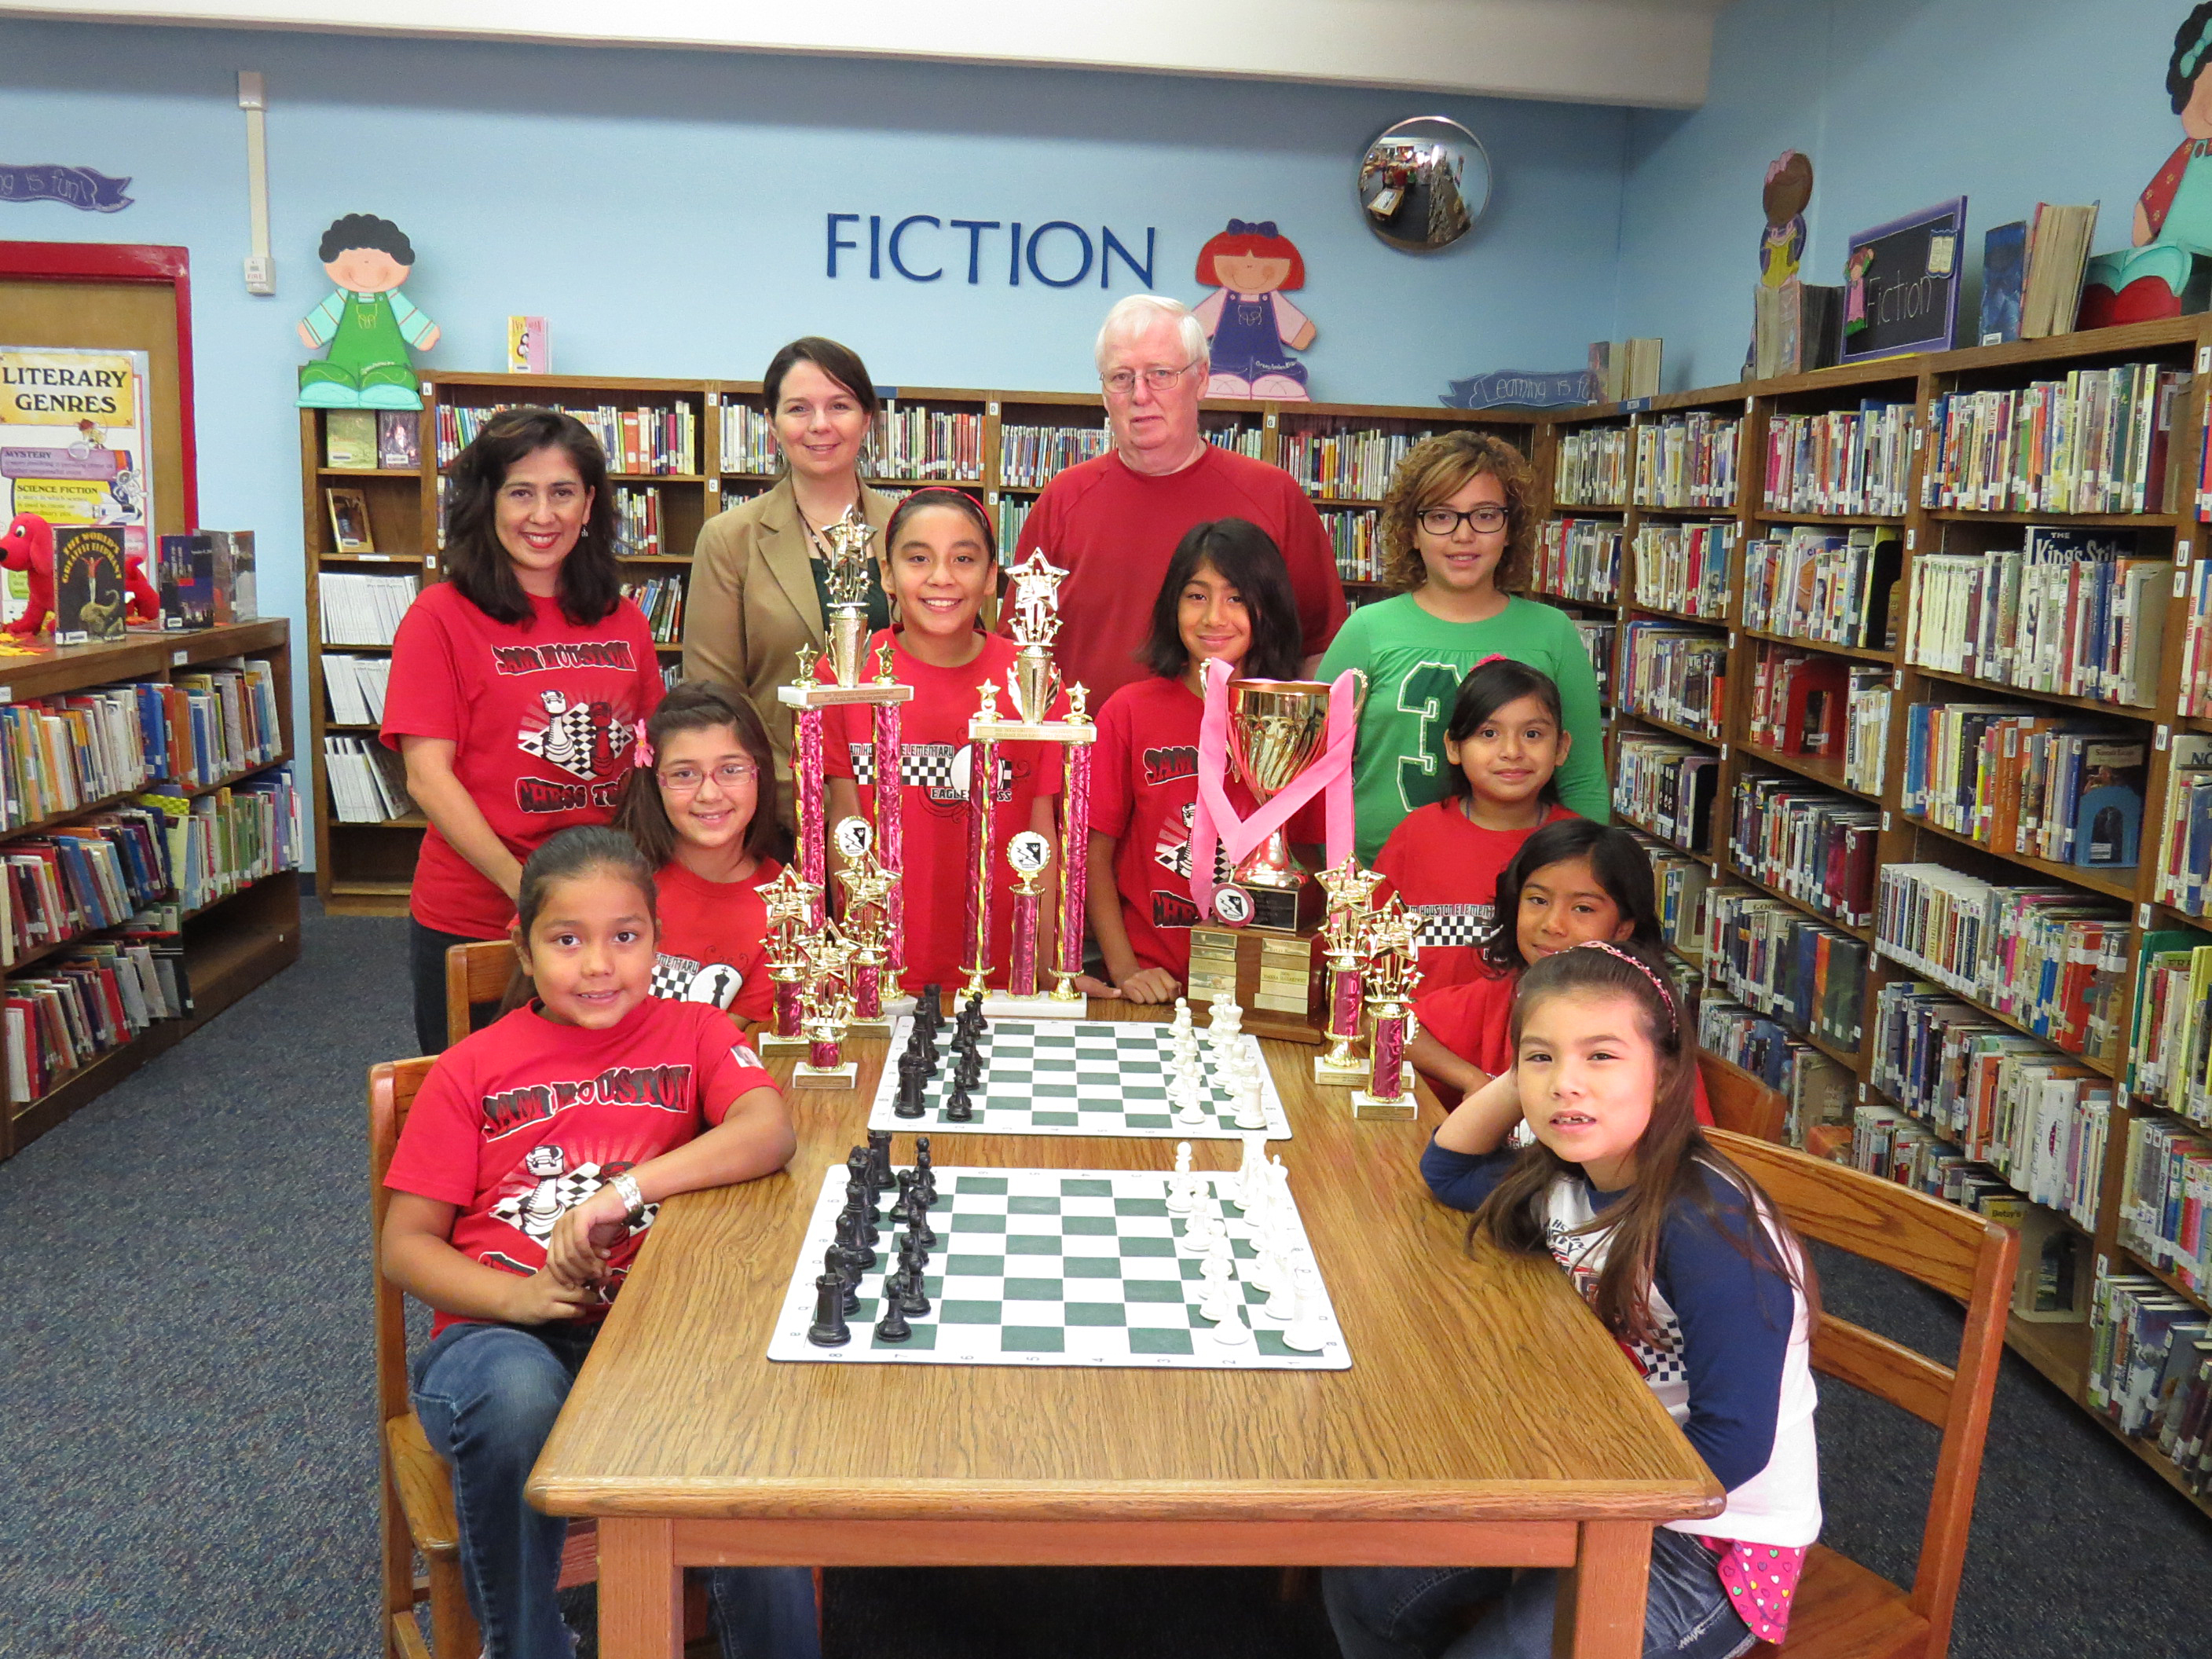 Sam Houston chess team outsmarts the competition at girl's state tournament